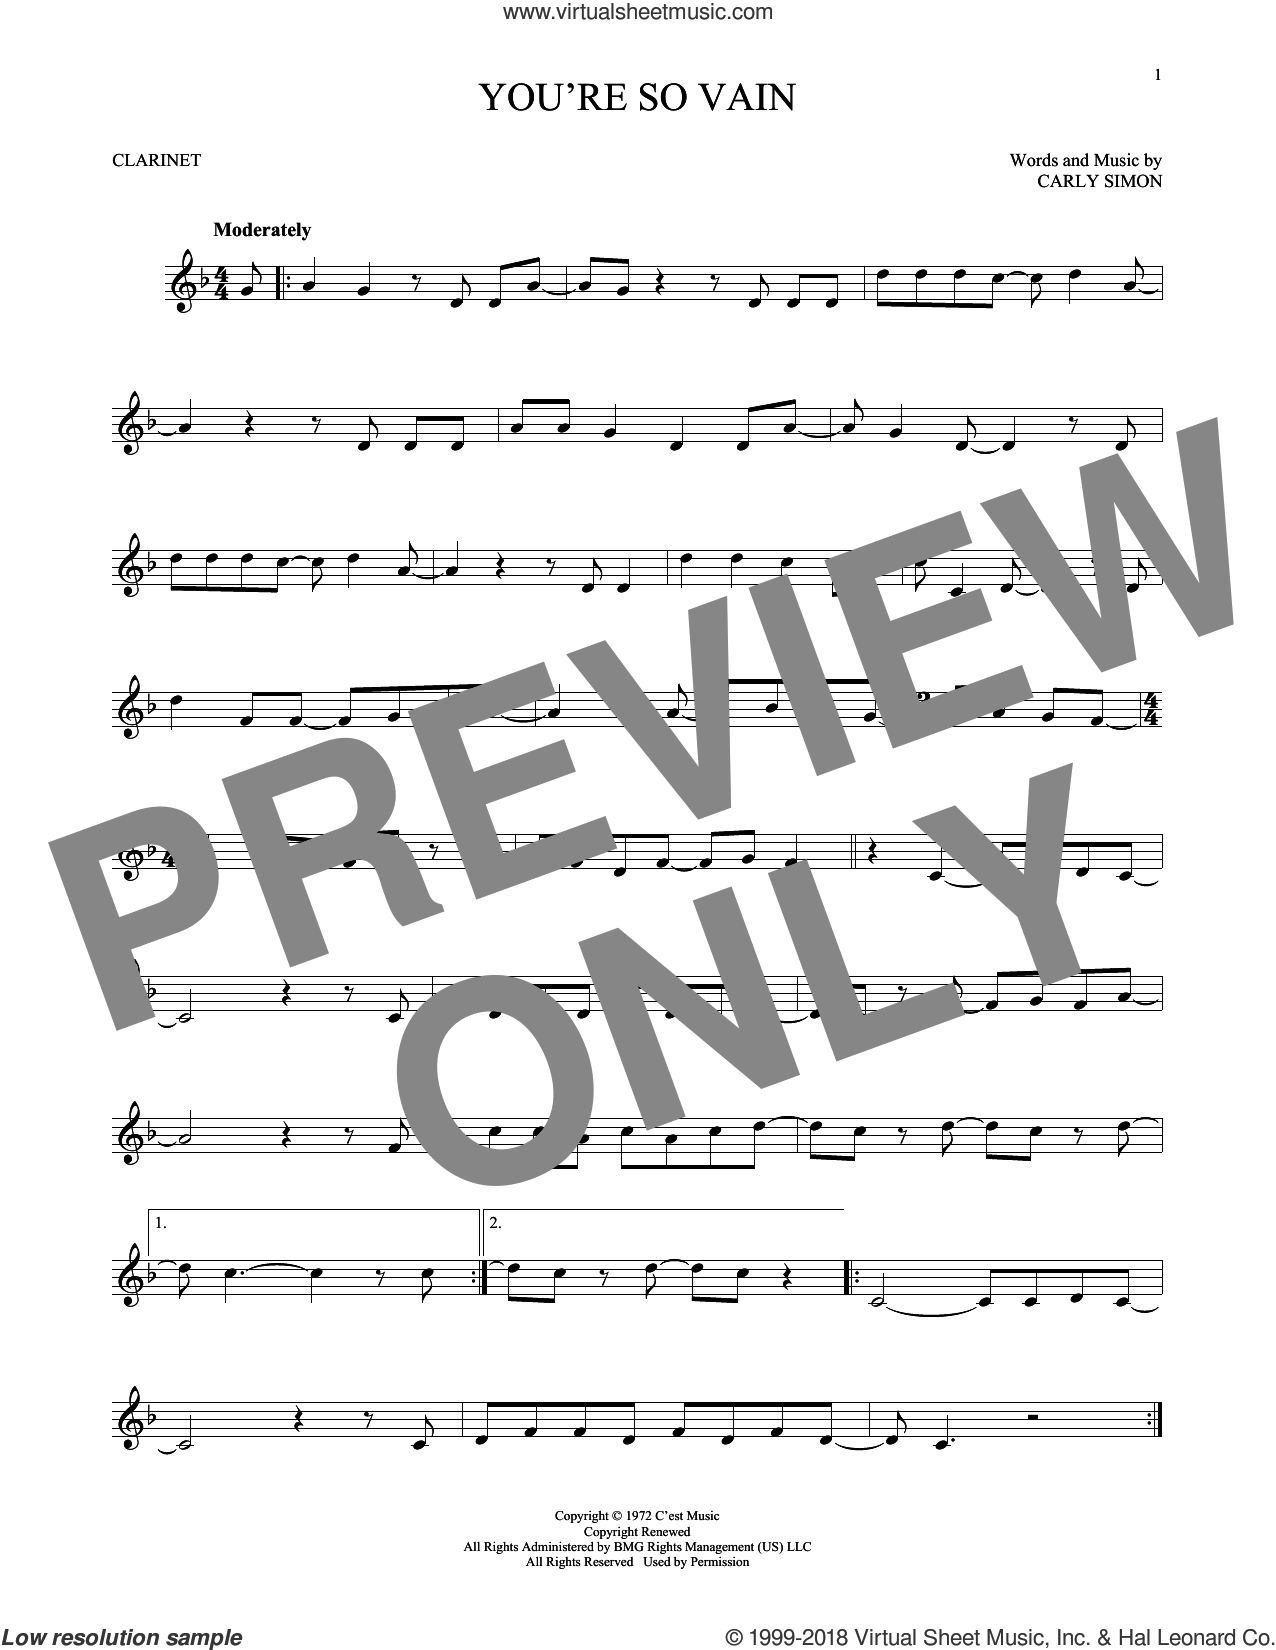 You're So Vain sheet music for clarinet solo by Carly Simon, intermediate skill level